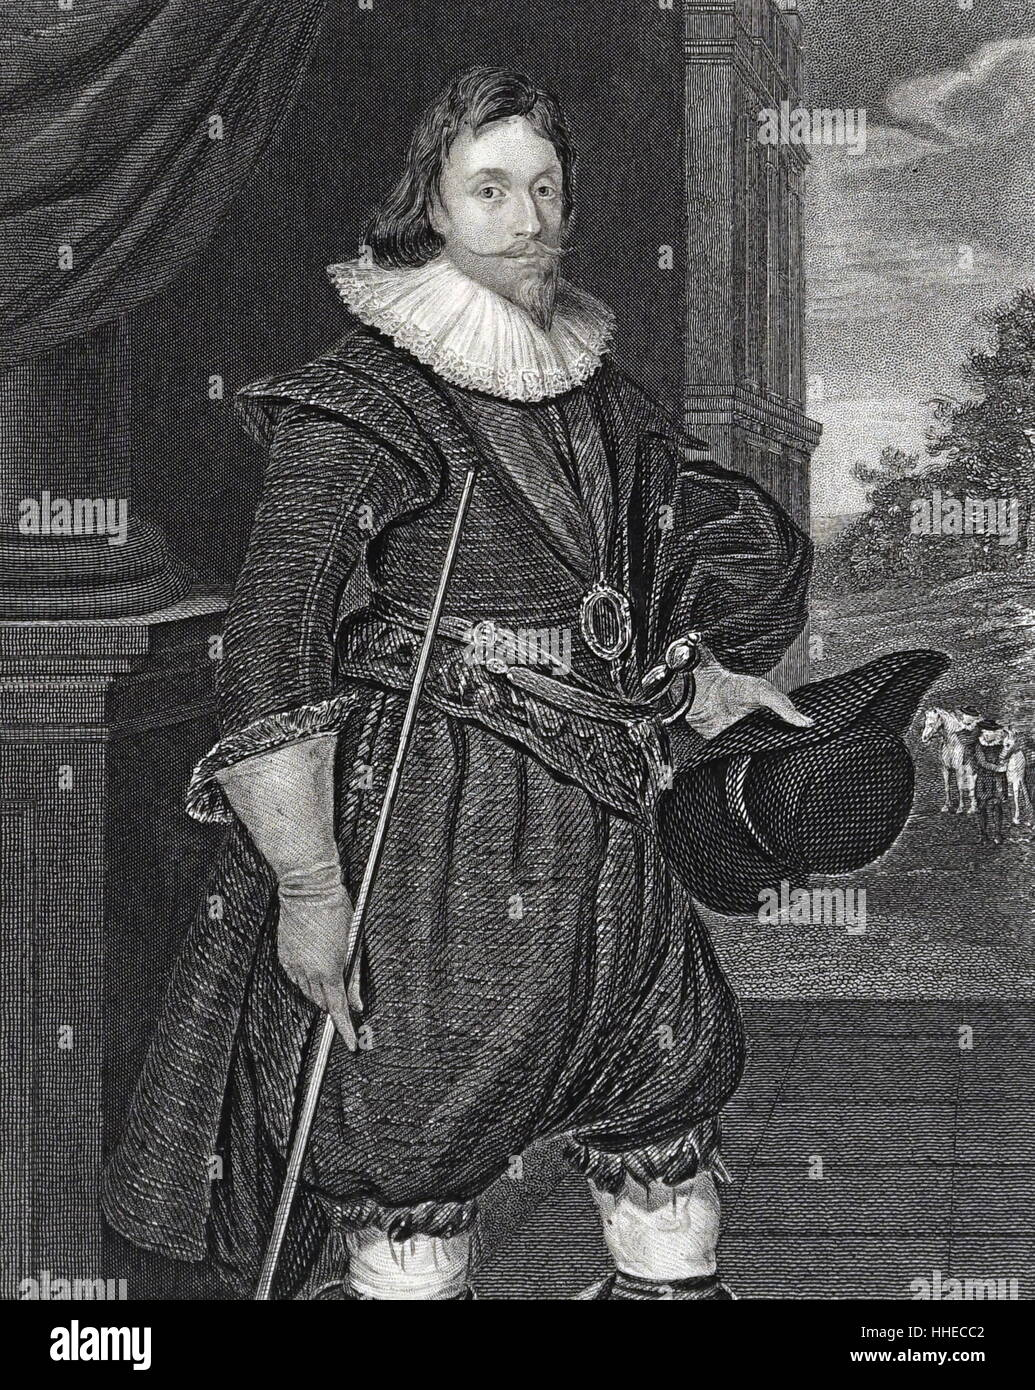 James, 2nd Marquis of Hamilton (1589-1625); Scottish nobleman - Stock Image